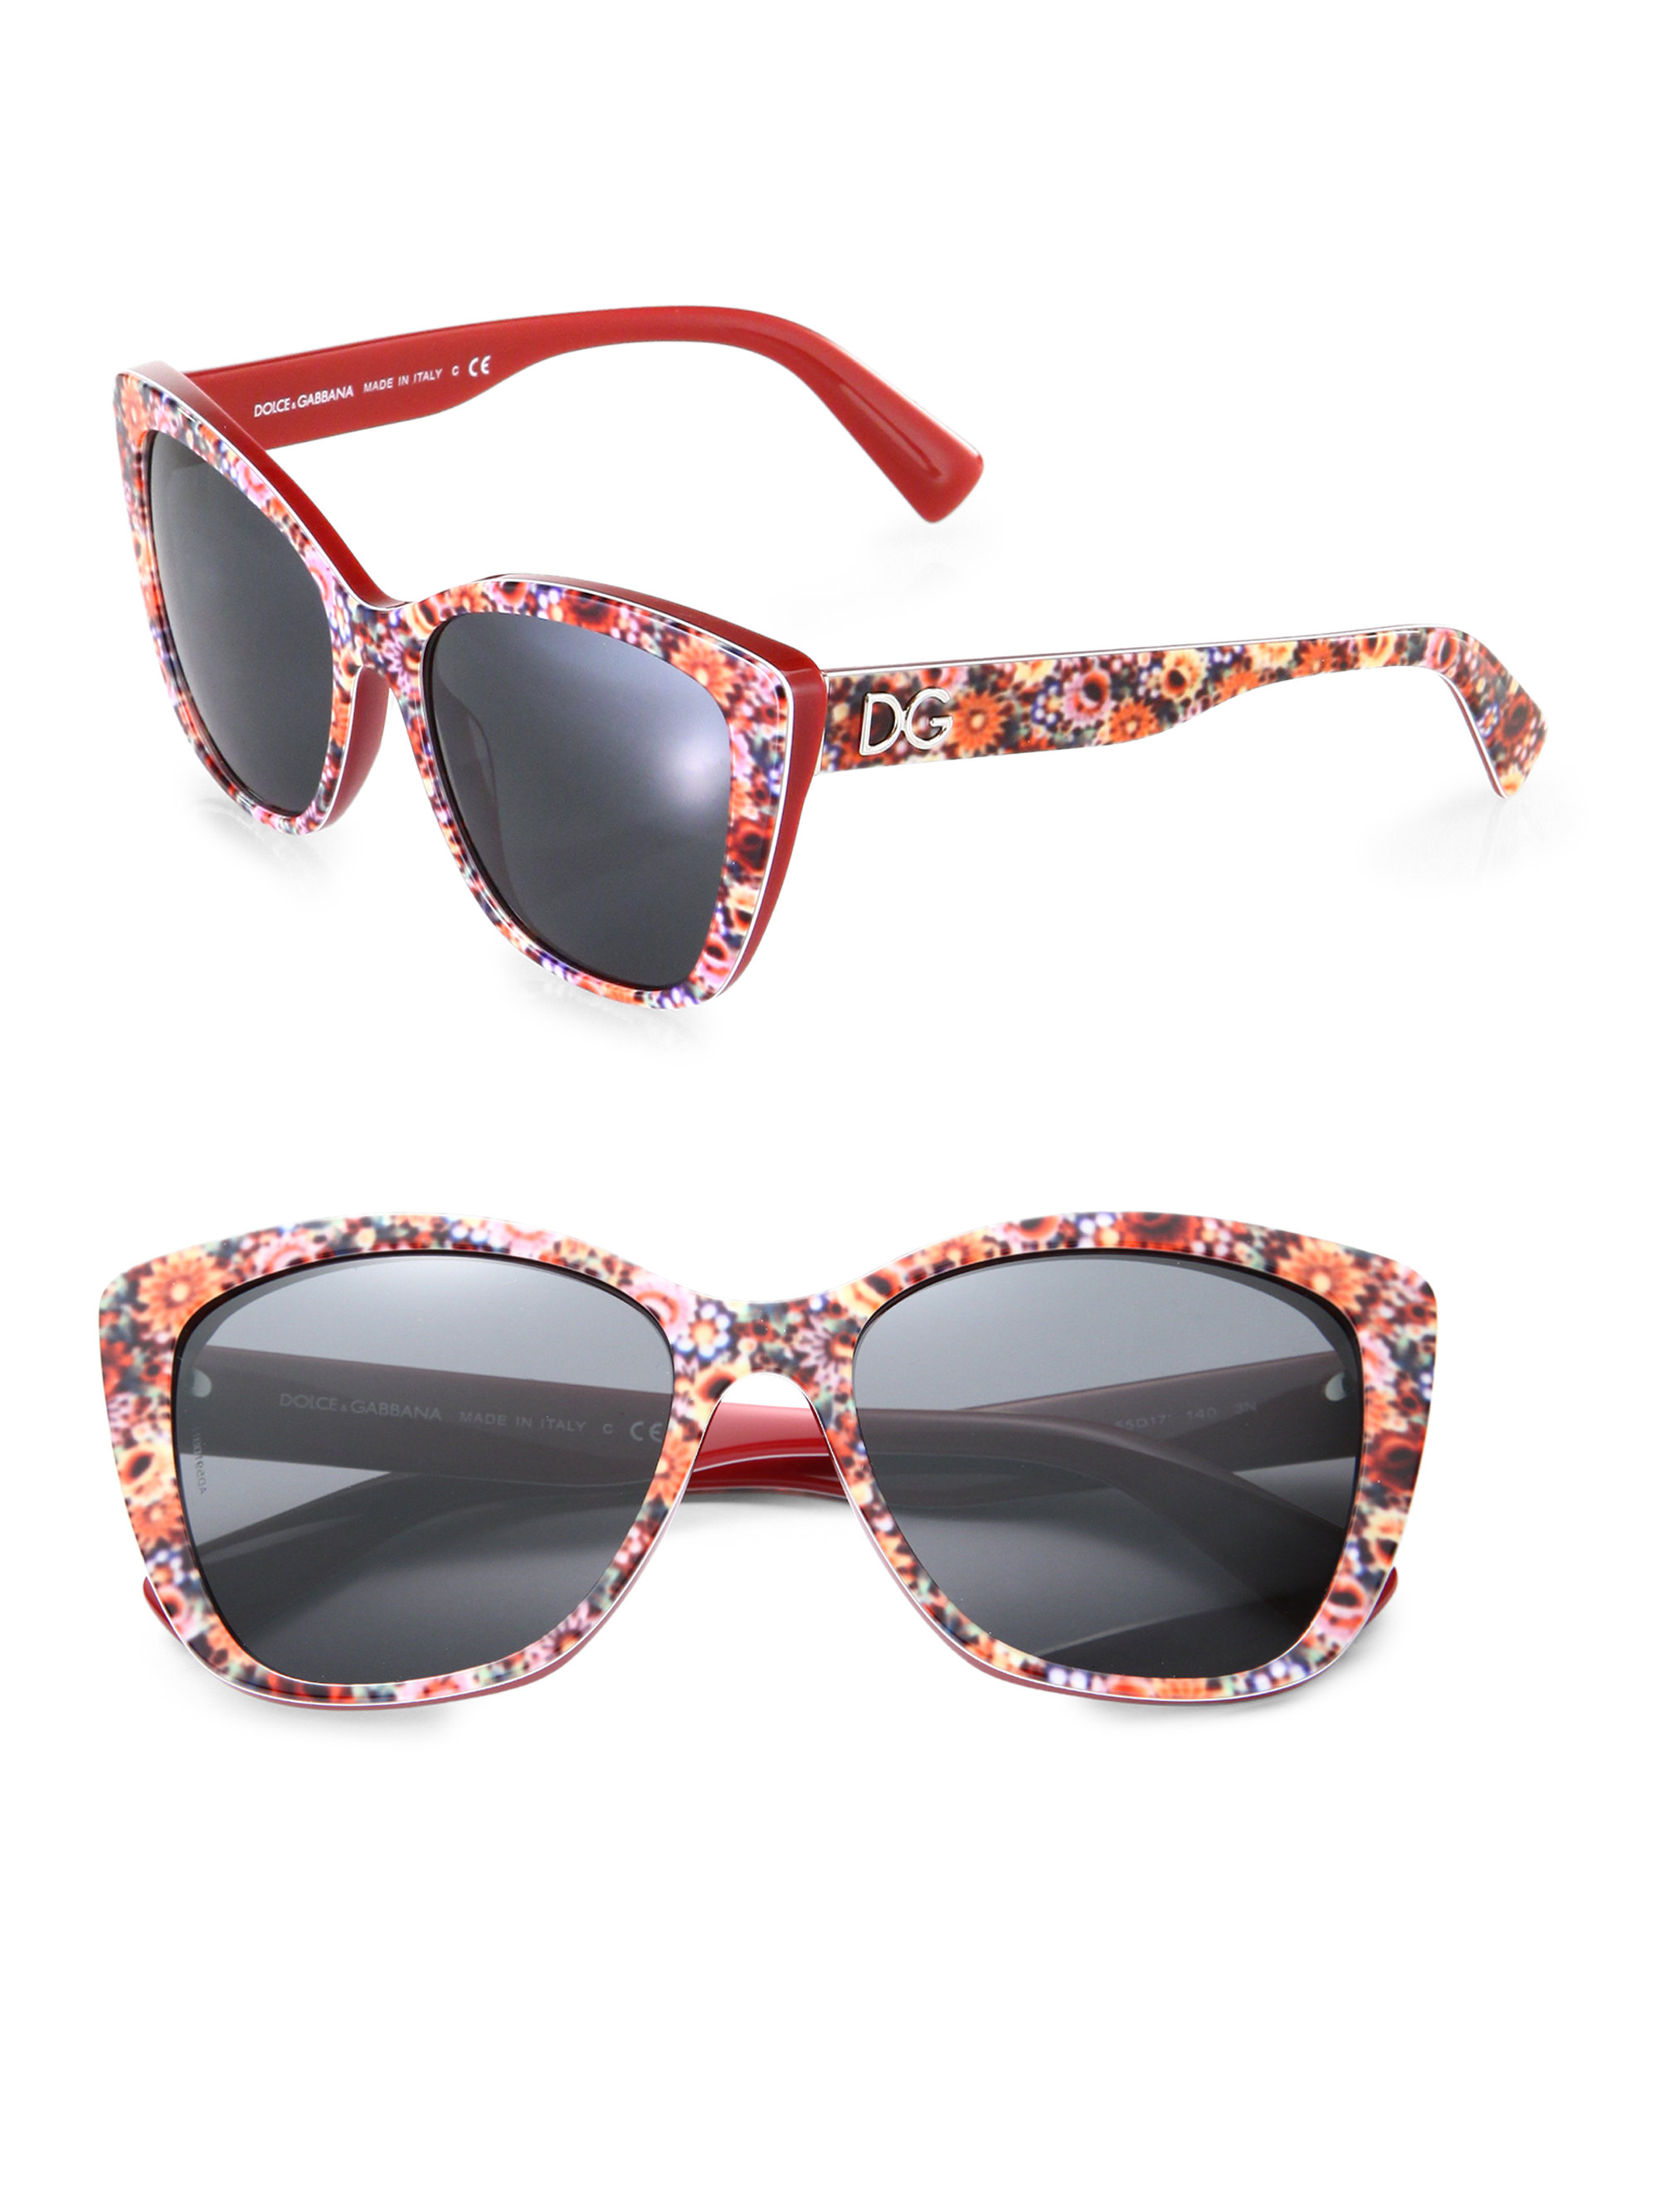 b5619847b8e Lyst - Dolce   Gabbana Floralprinted Modified Catseye Sunglasses in Red